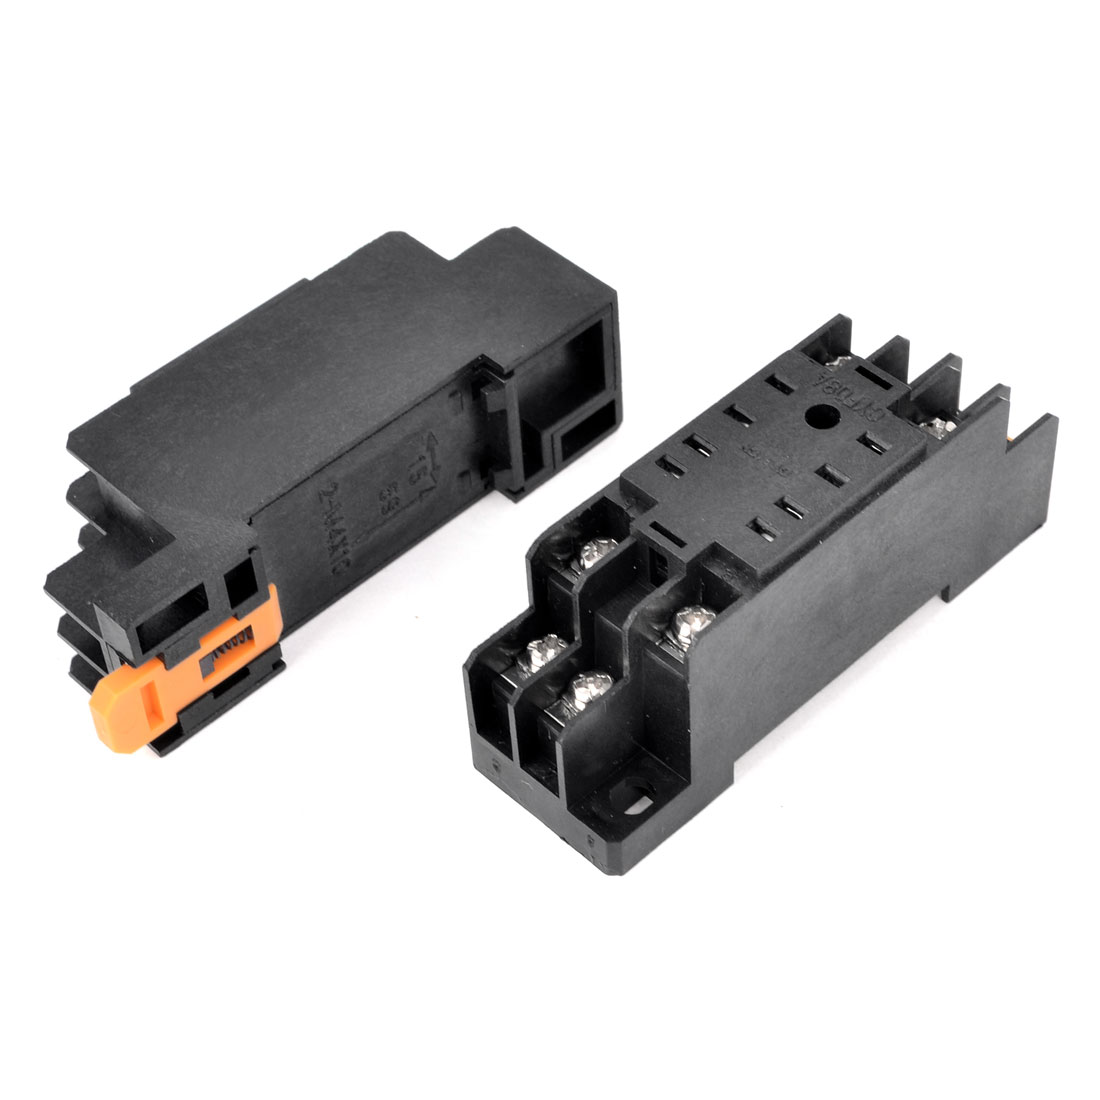 2PCS PYF08A AC 220V 5A/DC 24V 5A 8 Pin DIN Rail Mount Power Relay Socket Base for HH52P MY2NJ